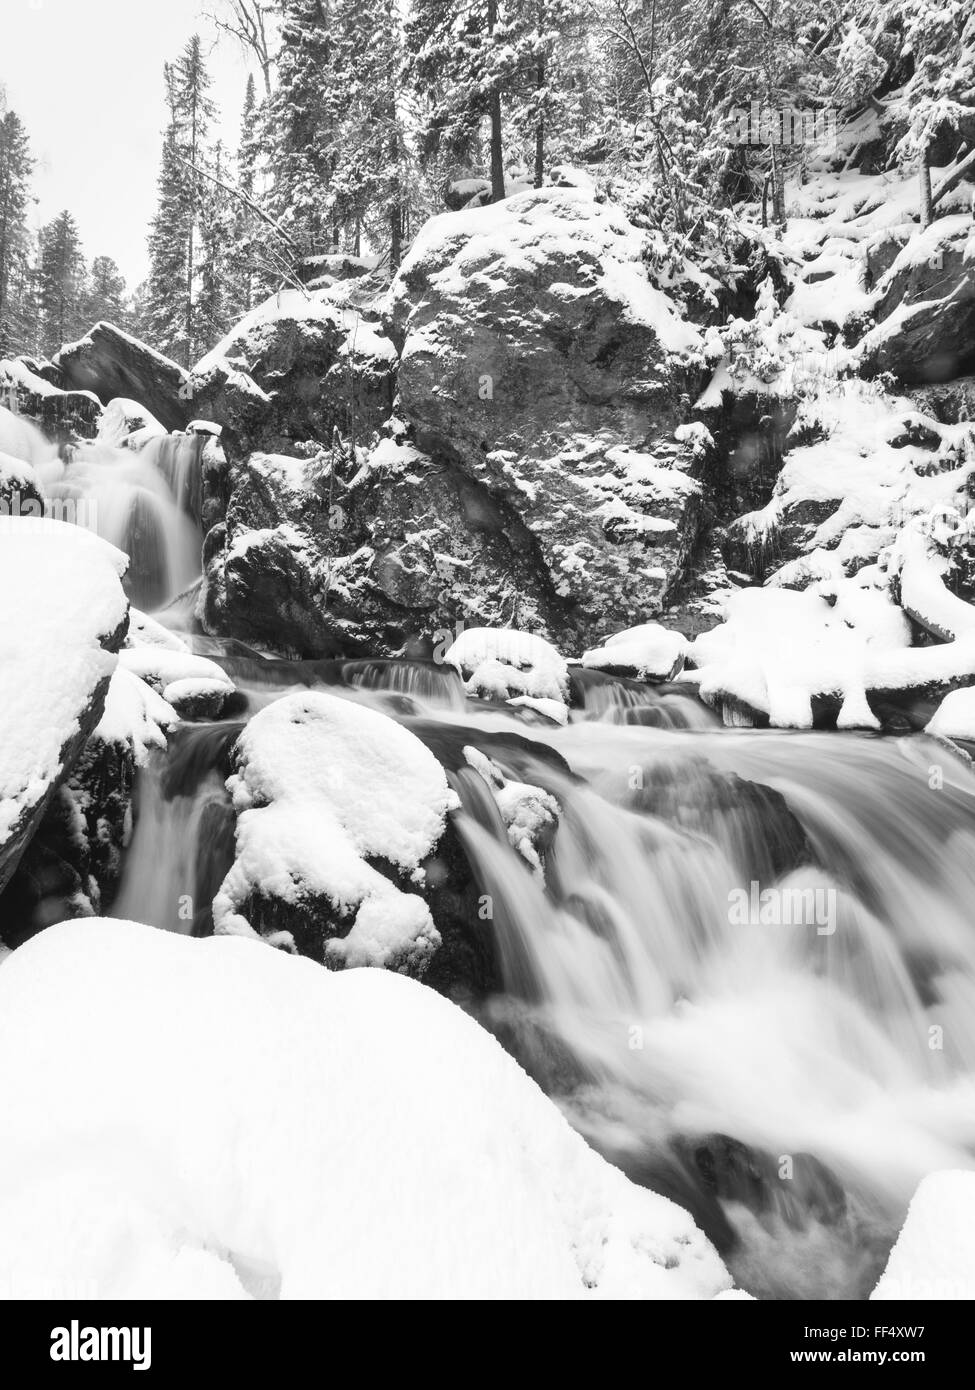 waterfall in snow, frozen waterfall, snowy cold water of north river, russian nature - Stock Image